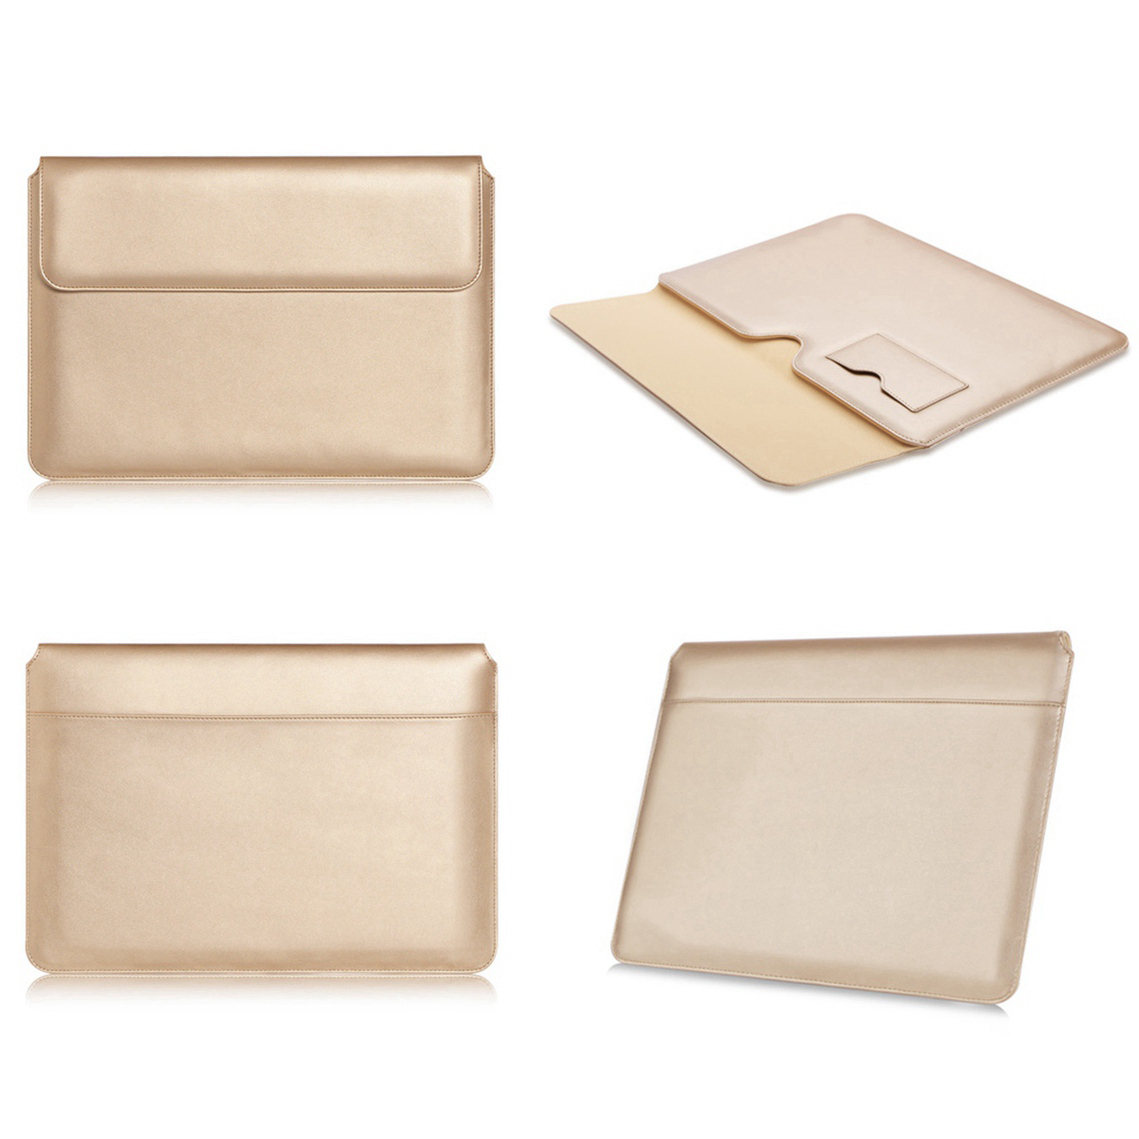 For Huawei MateBook 12 inch Tablet Leather Case For Huawei Mate Book 12 inch Protective Pouch Bag Cover Sleeve +Stylus huawei matebook hz w19 256gb gold dock